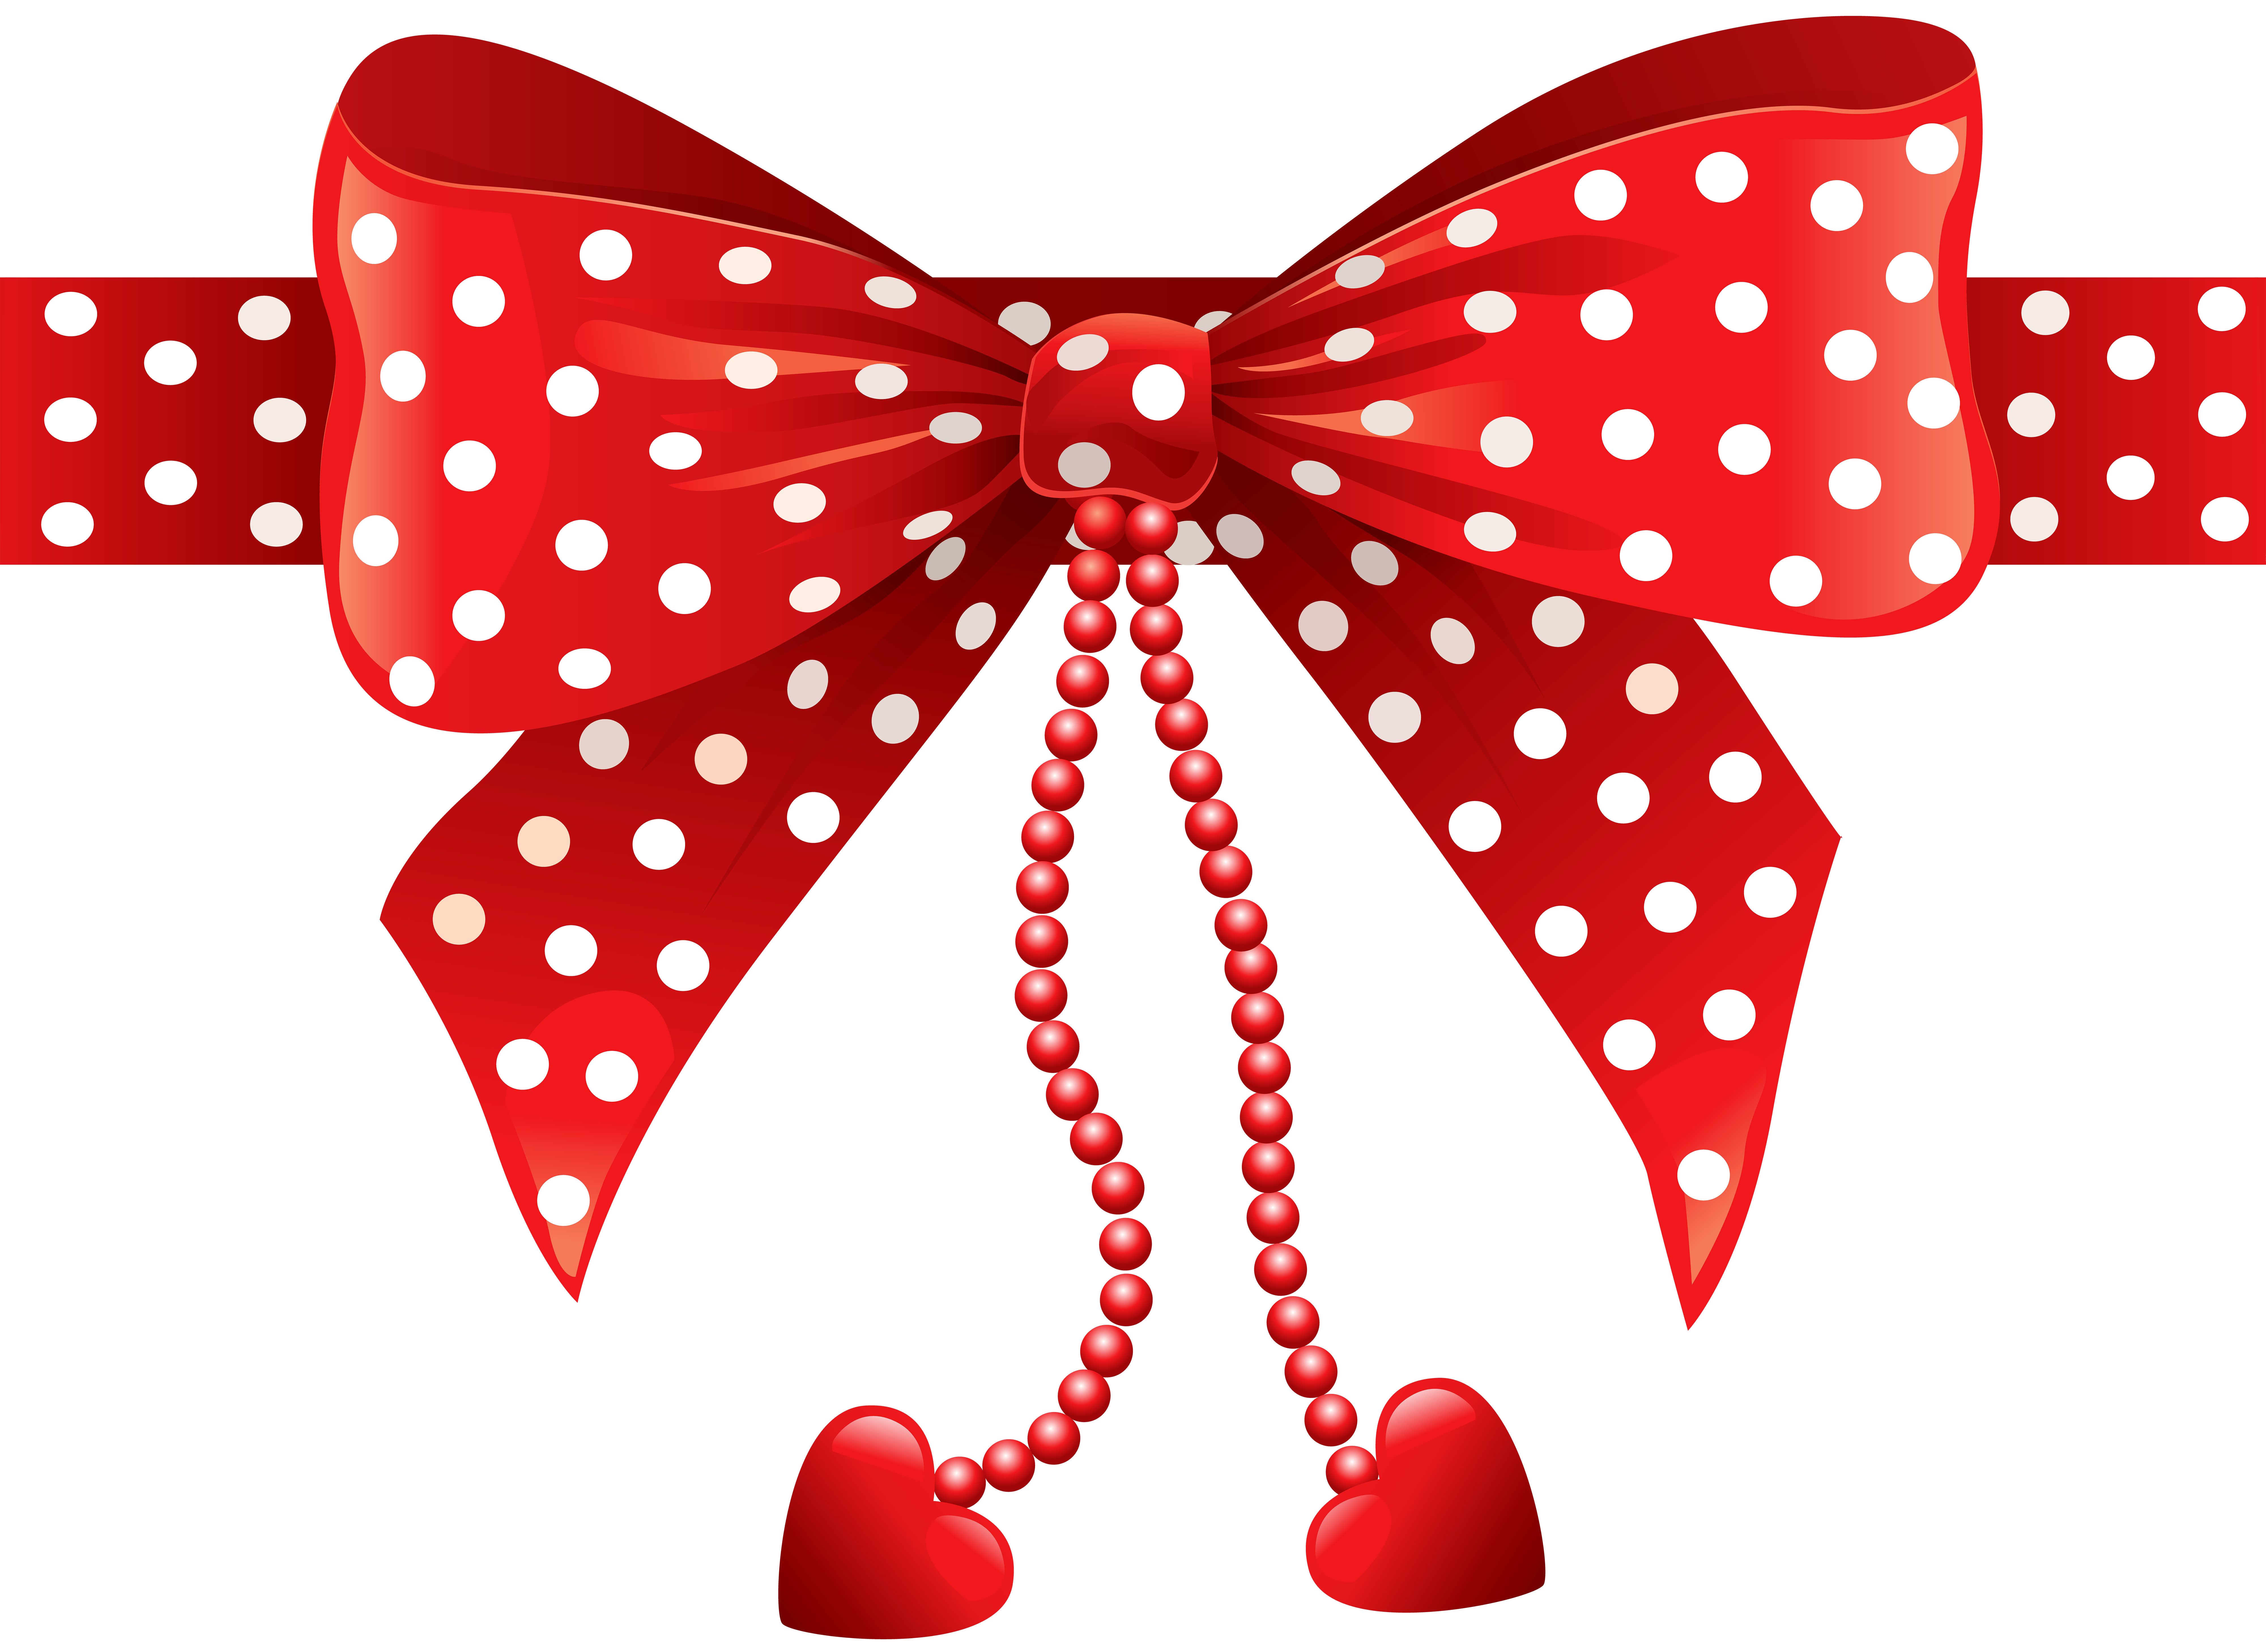 Png images of red polka dots. Bow transparent clip art